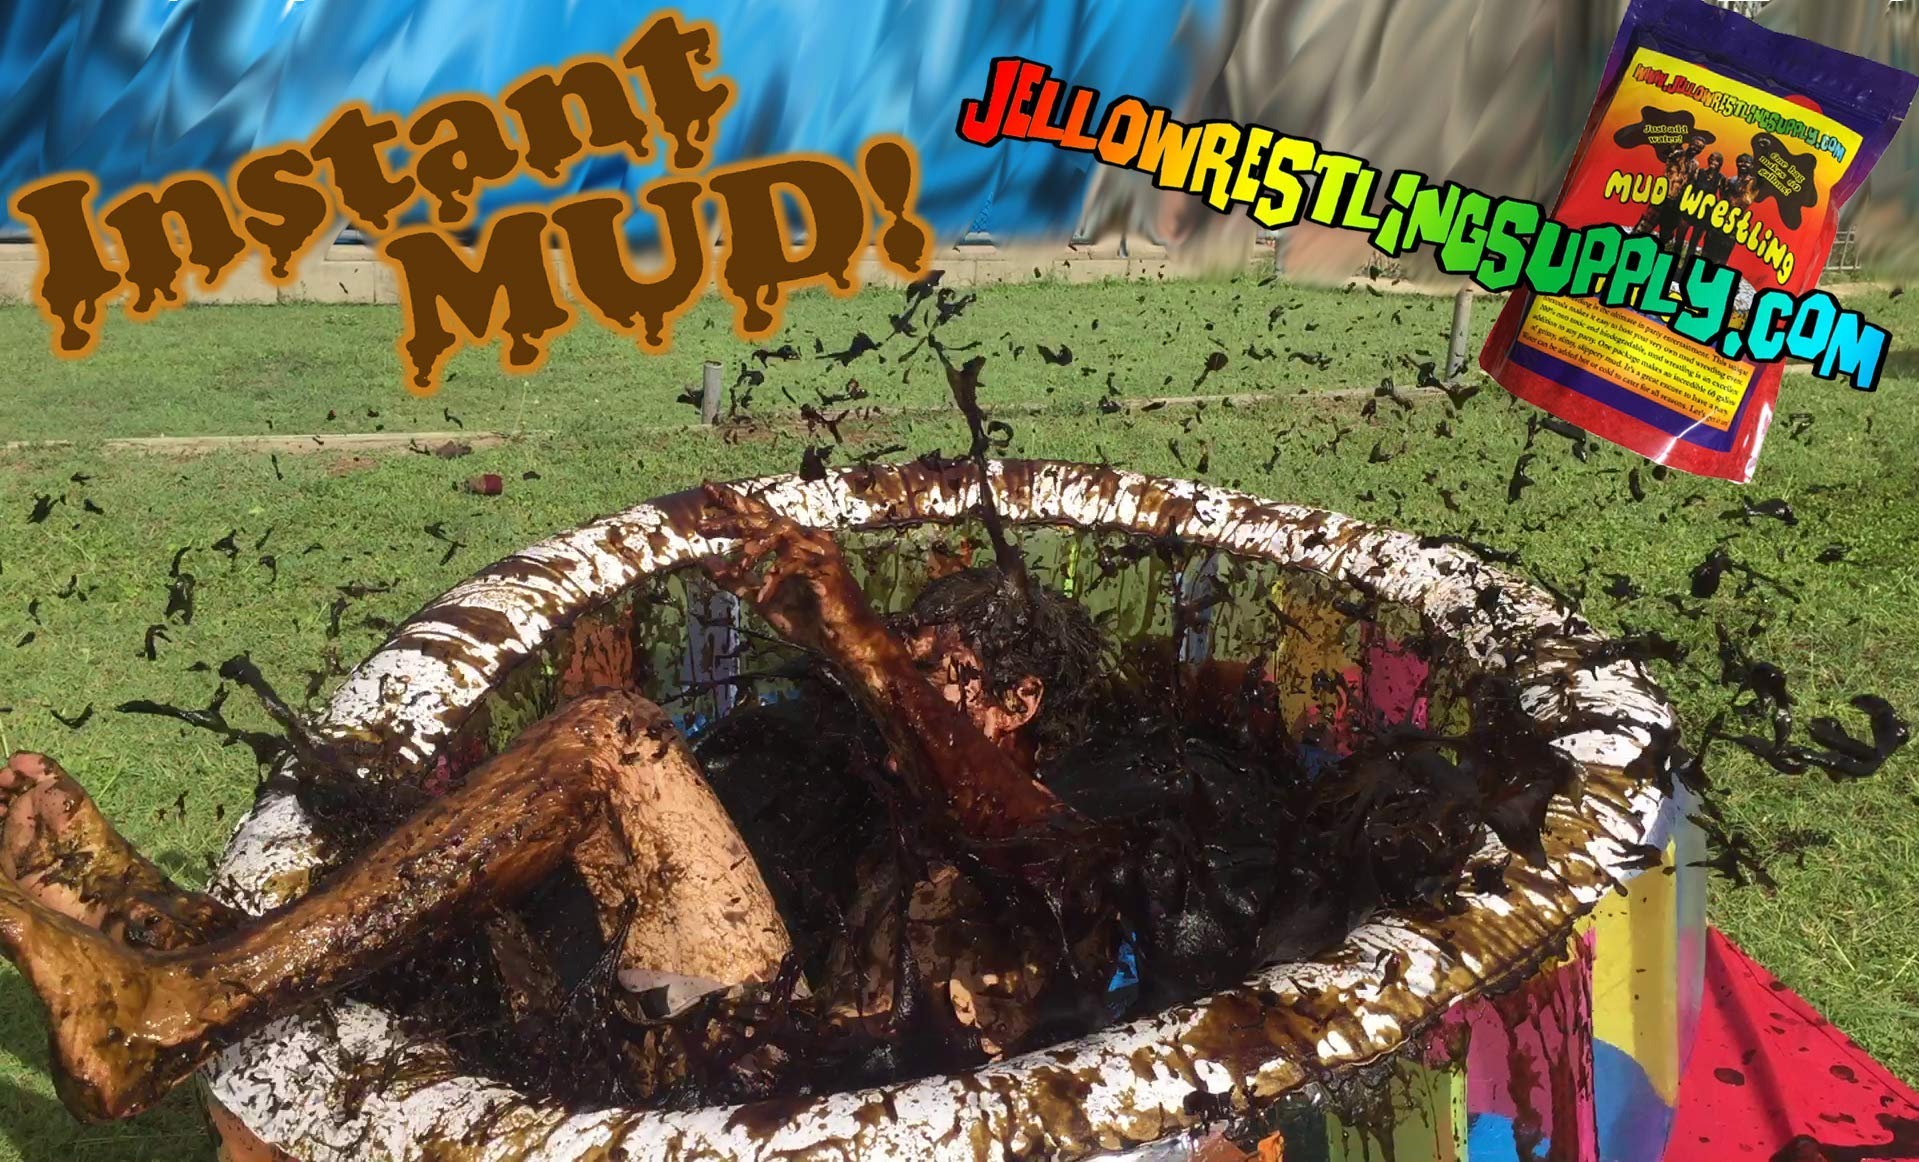 INSTANT MUD for Wrestling, Mud Pies, Balloons & Bombs JUST ADD WATER Bulk Mud powder makes 60 GALLONS of fake mud. Safe, clean mud run obstacle pits, pitch burst, Slime sludge messy kit oil tar by JelloWrestlingSupply.com (Image #7)